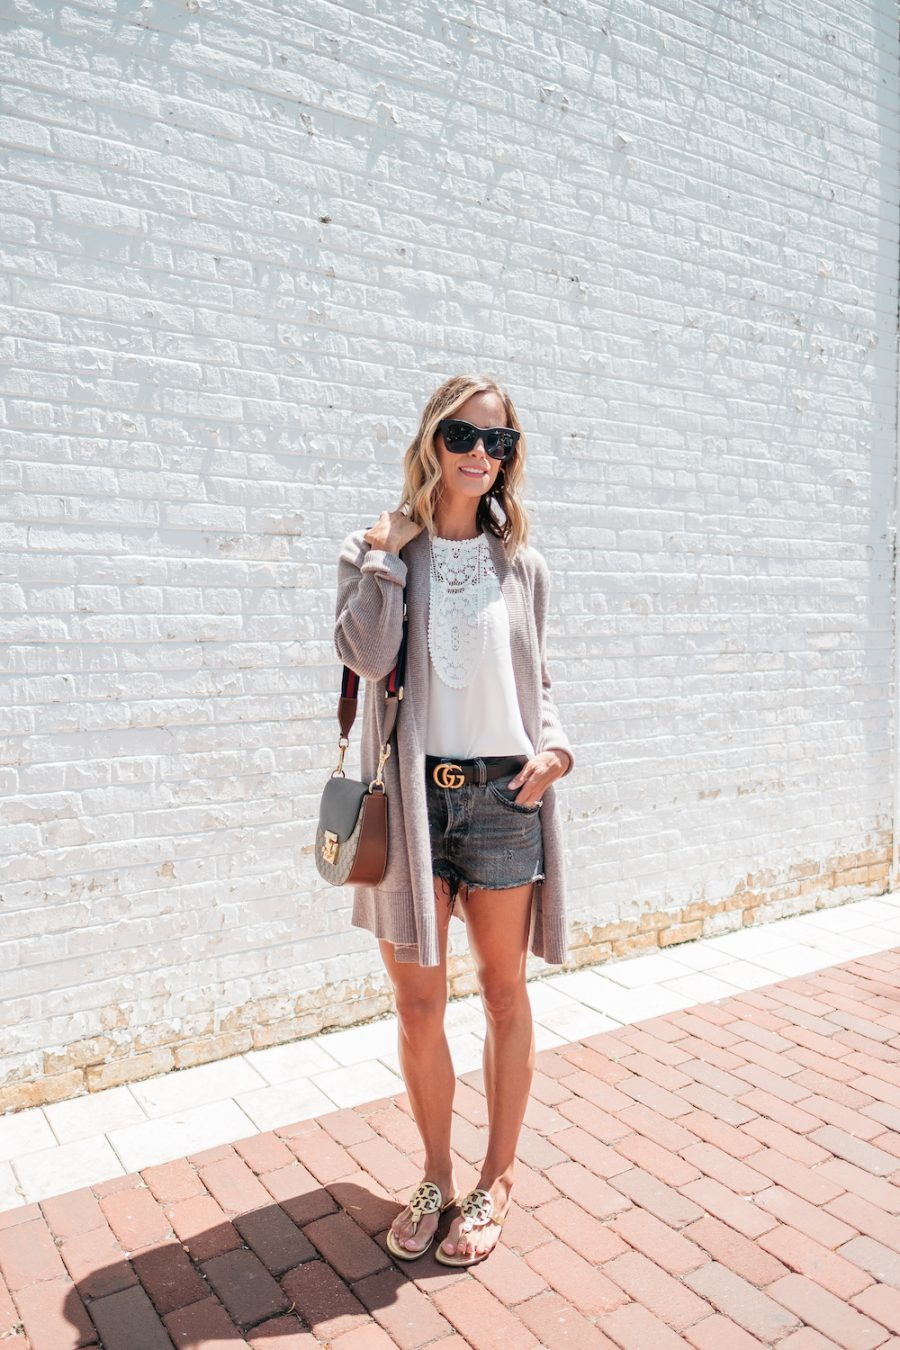 10 Easy Summer Outfit Ideas, denim shorts, cardigan, and sandals